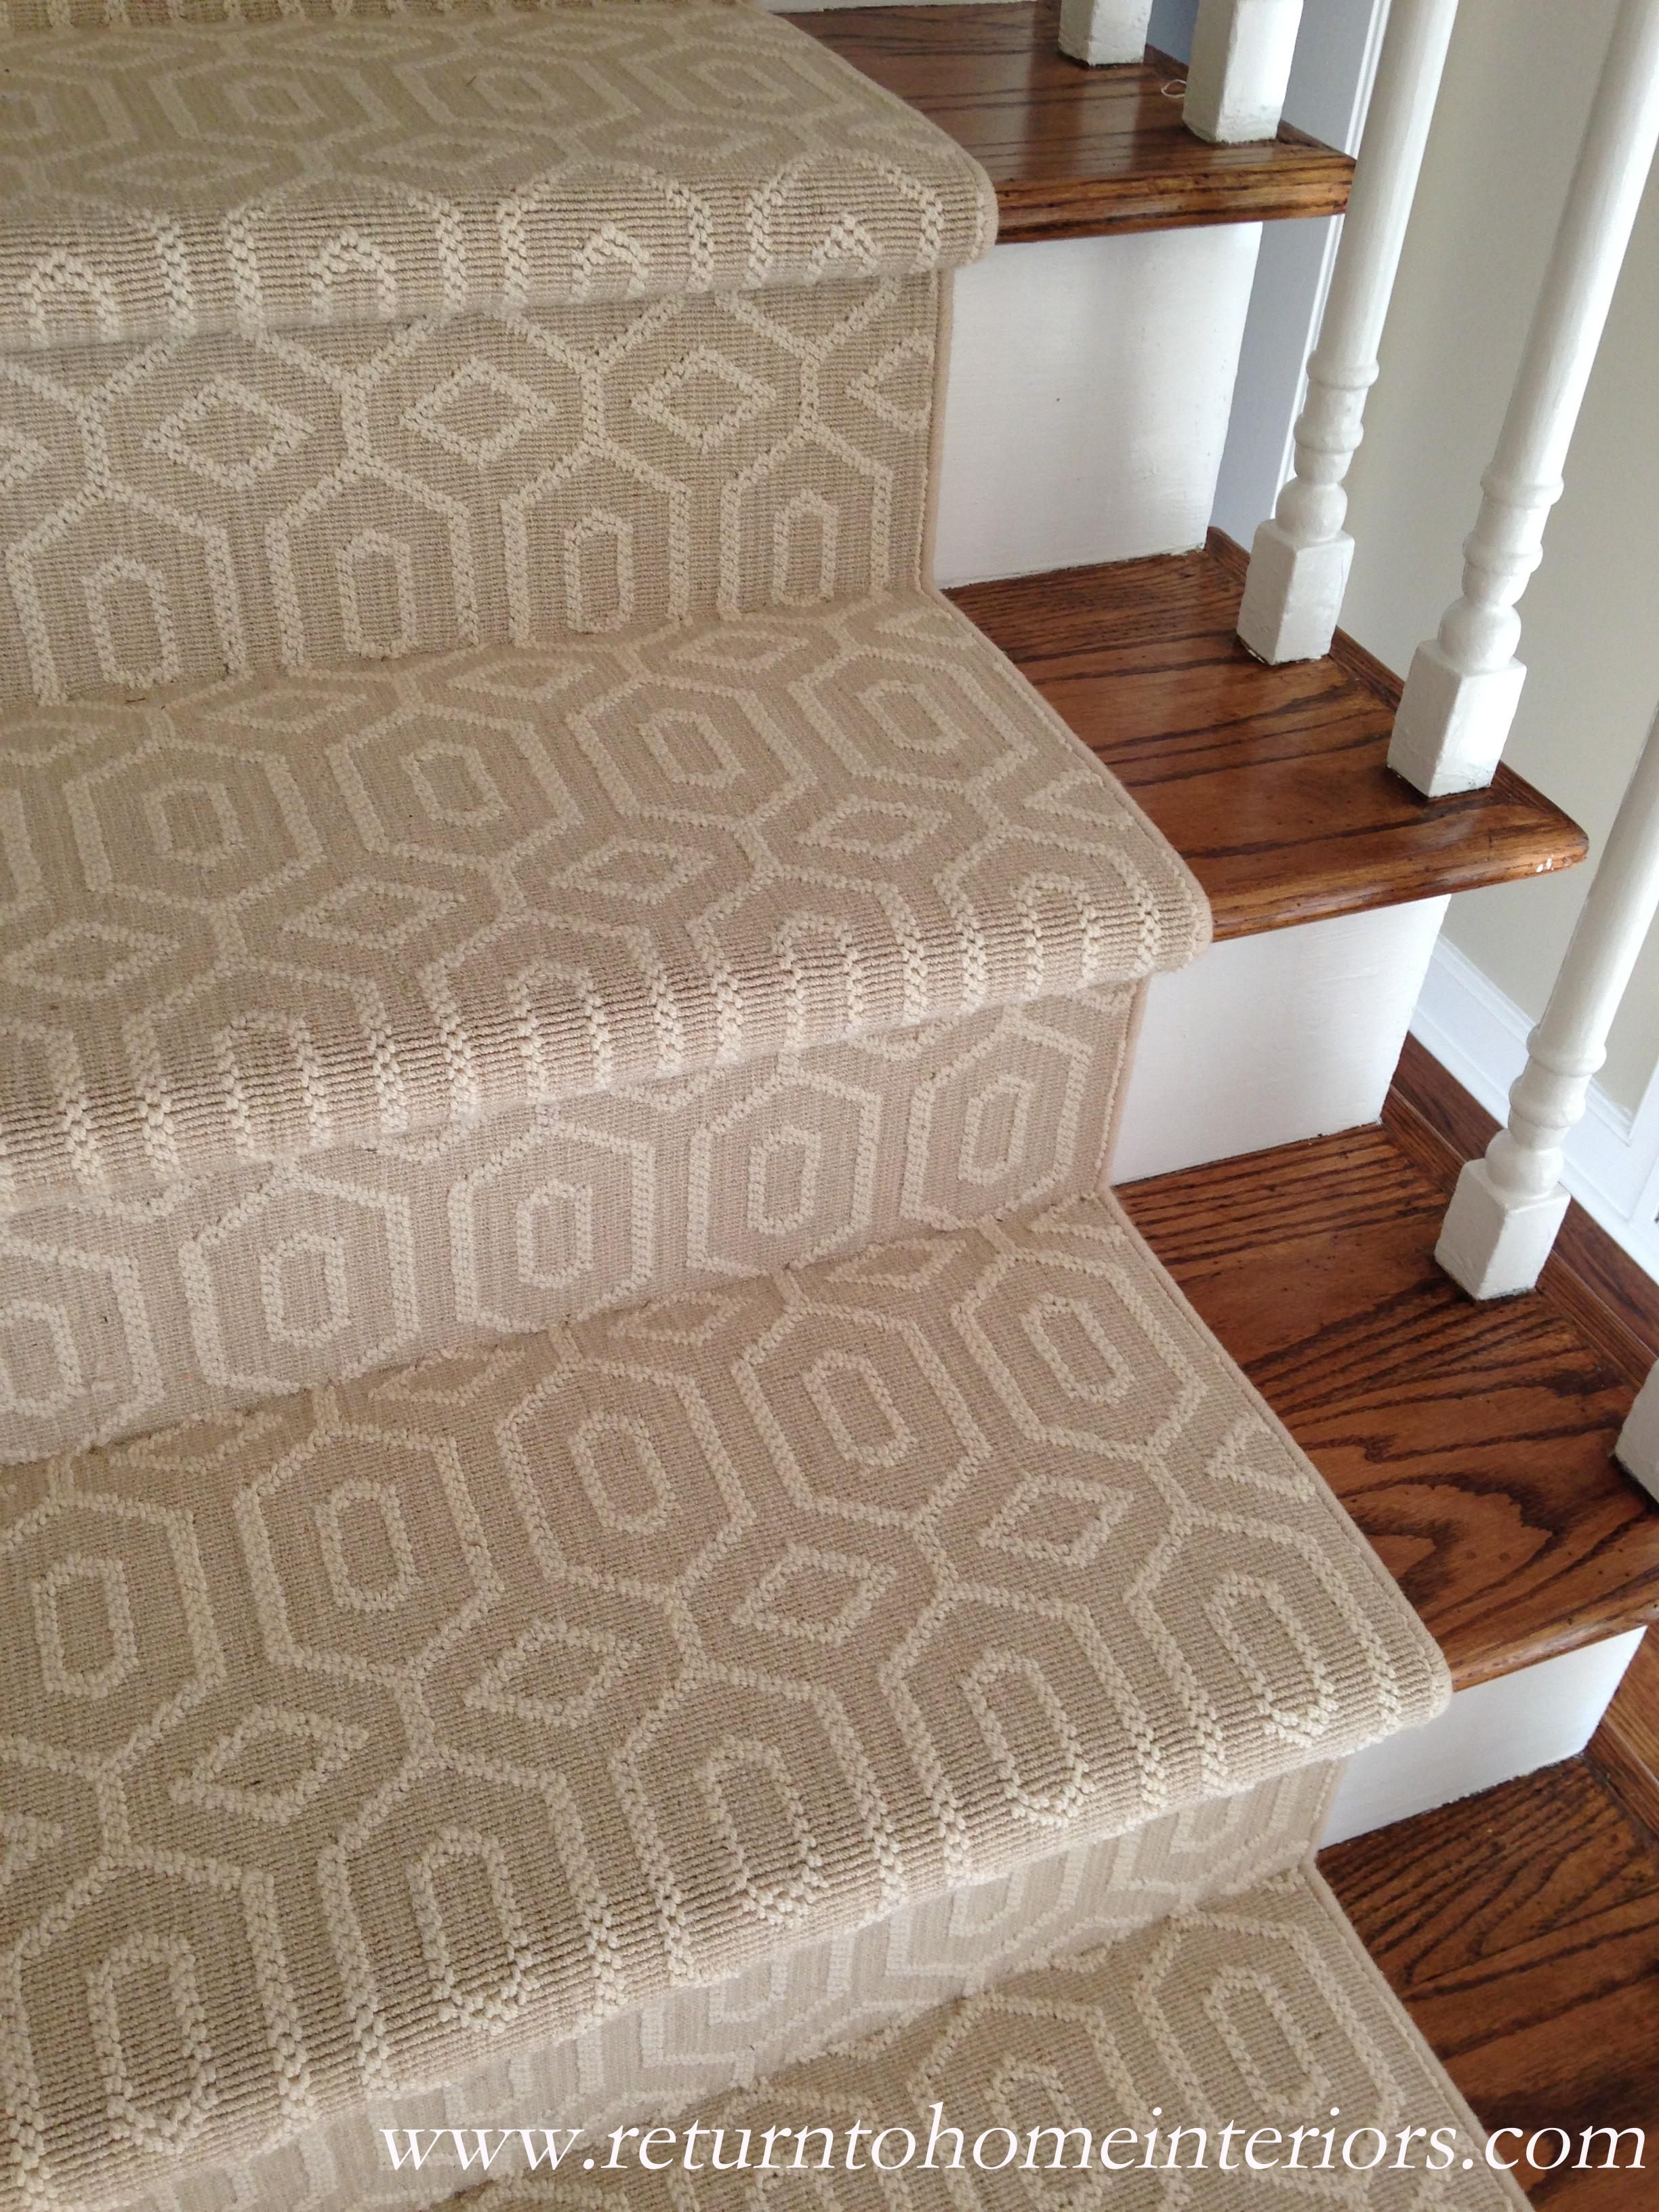 Distinctive Staircase Choosing A Stair Some Inspiration Lessons Learned Stair Carpet Runner Menards Stair Carpet Runner Bars houzz 01 Stair Carpet Runner